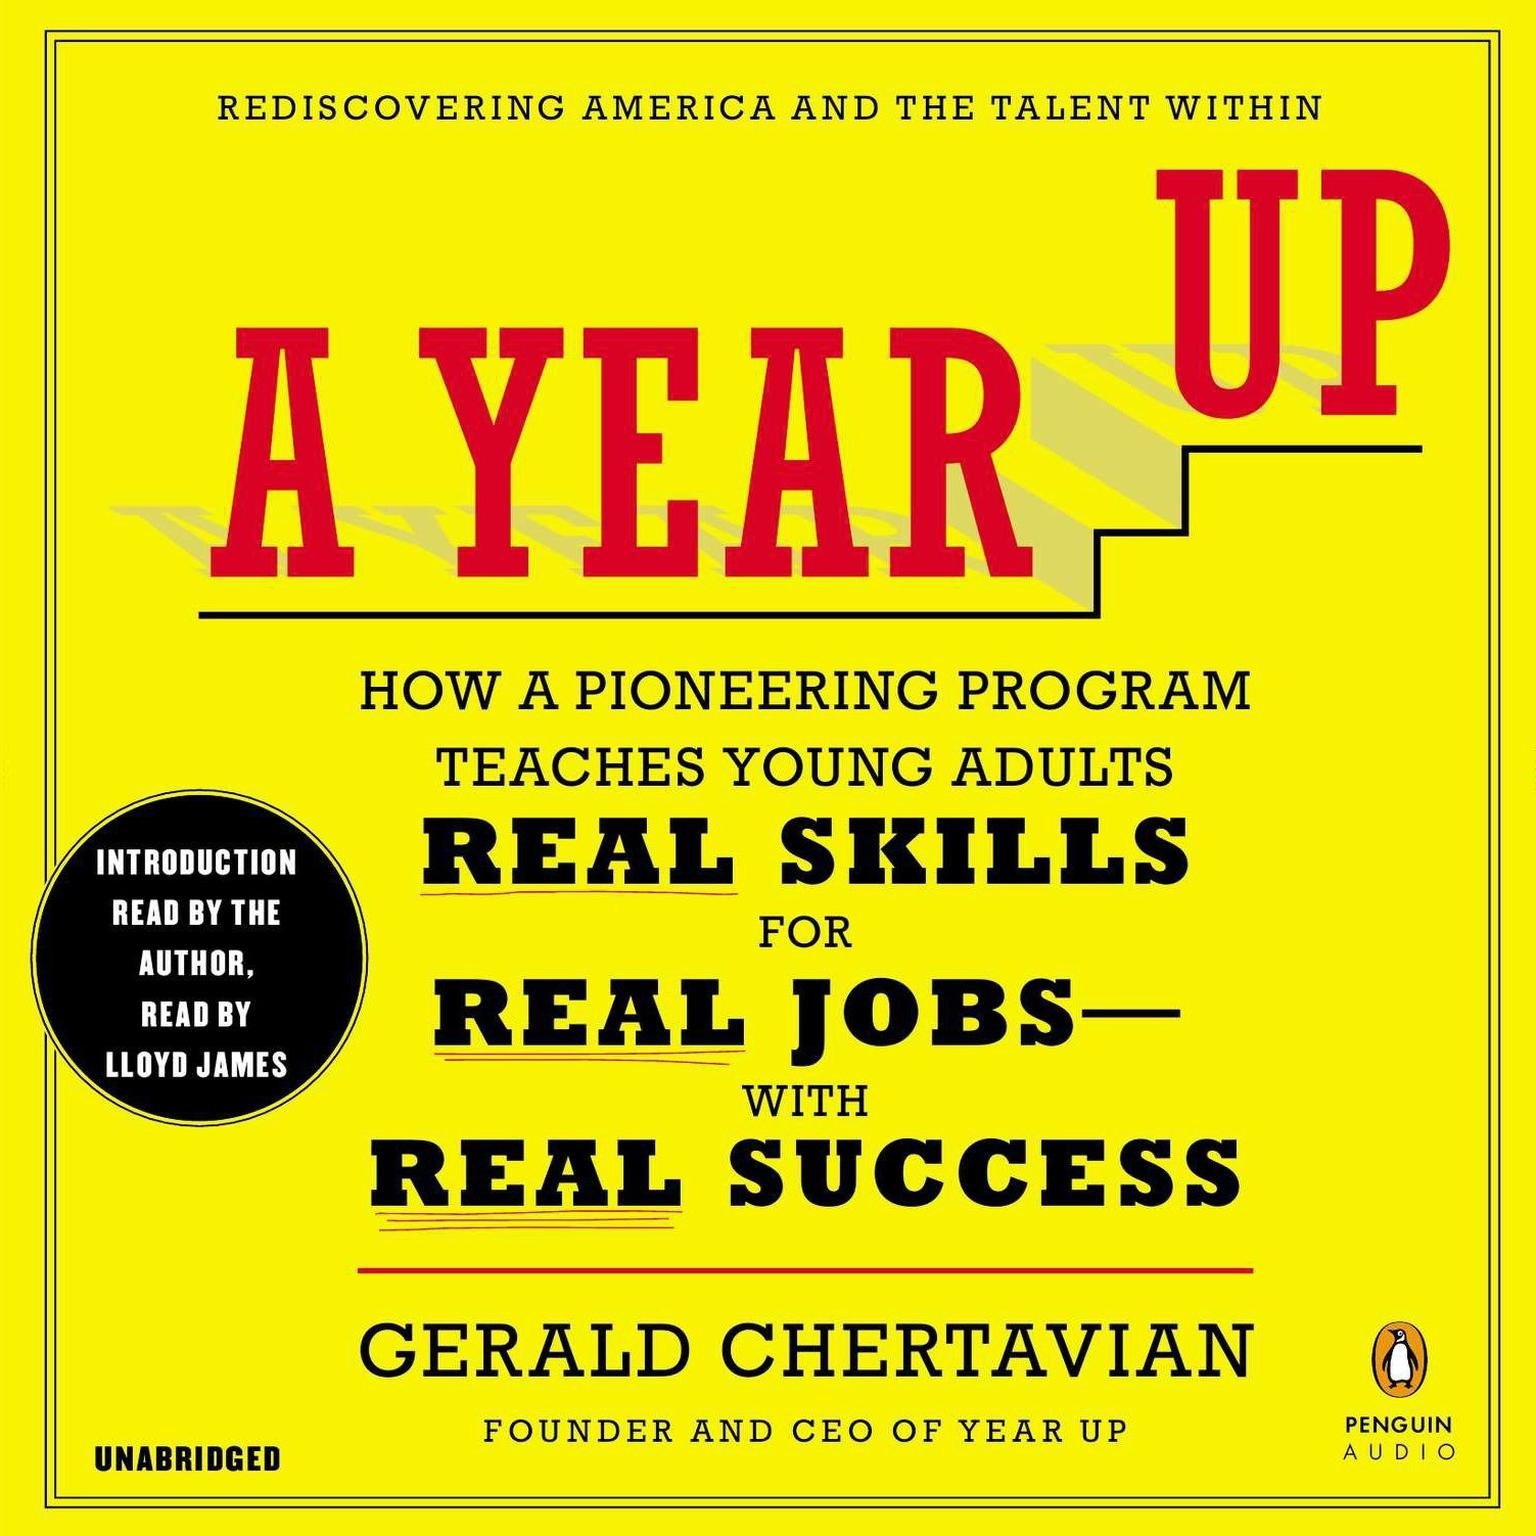 Printable A Year Up: How a Pioneering Program Teaches Young Adults Real Skills for Real Jobs-With Rea l Success Audiobook Cover Art